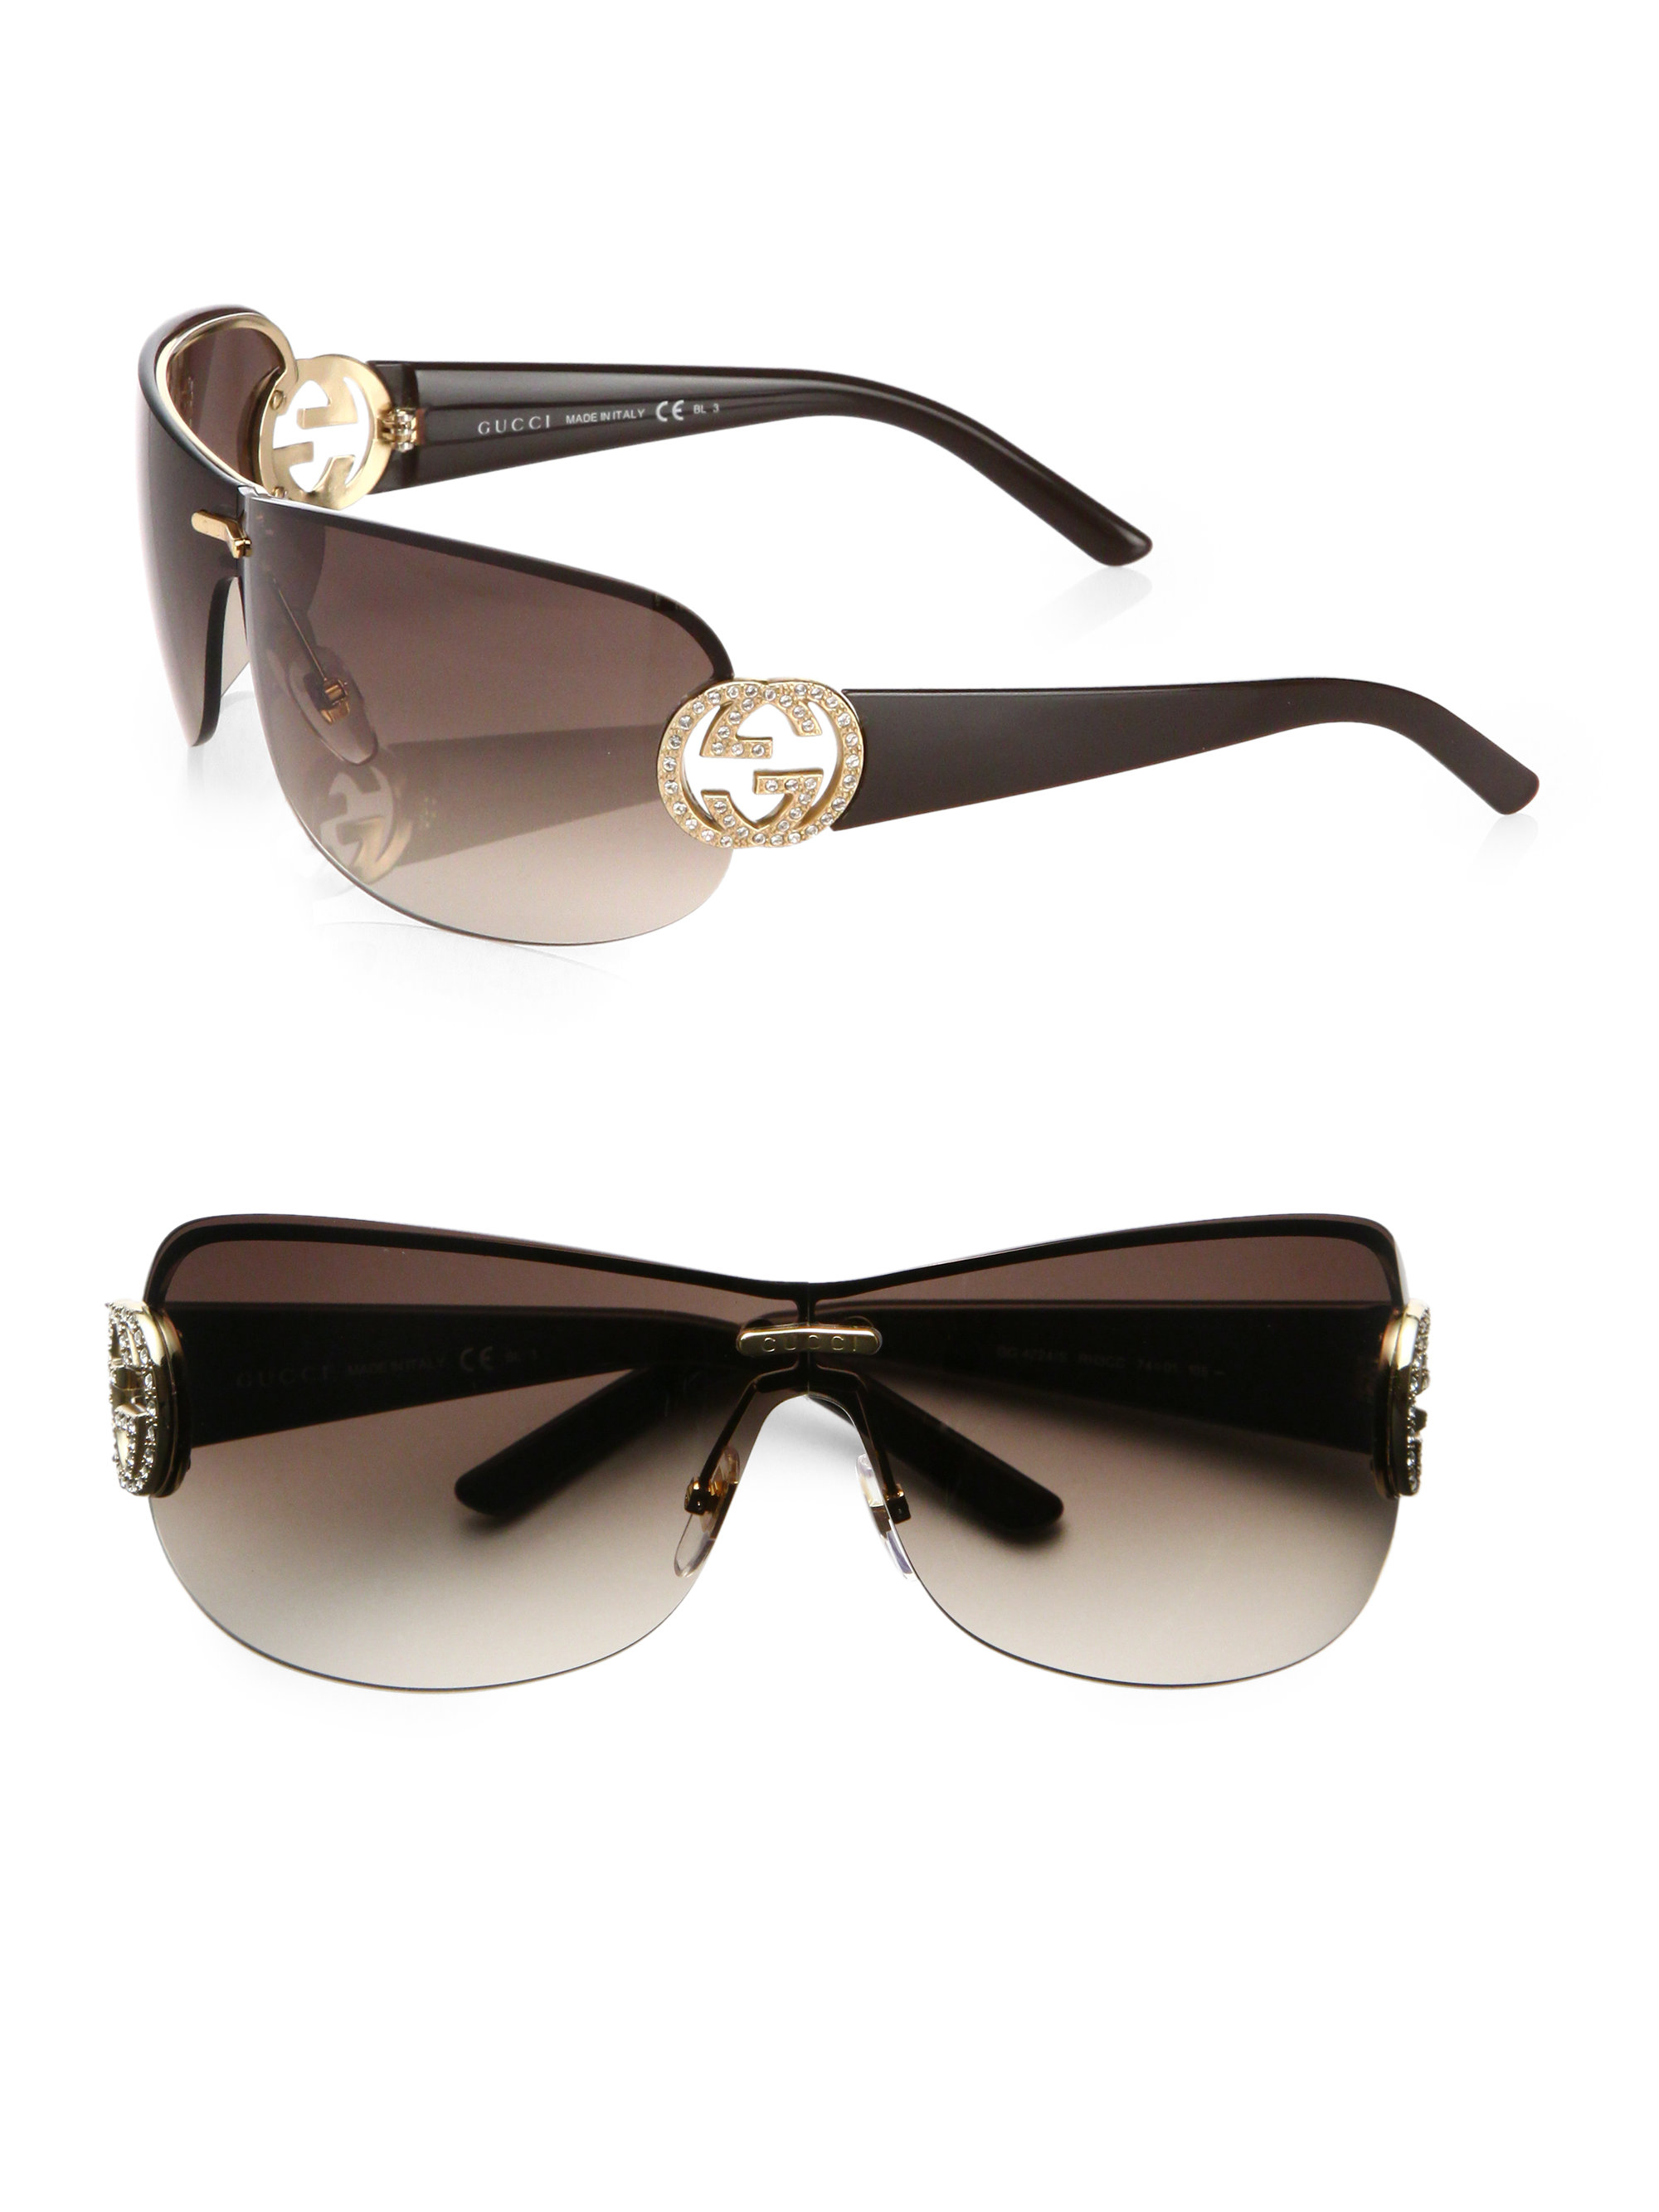 c2651fe0b1 Gucci Oversized Round Crystal Gg Shield Sunglasses in Metallic